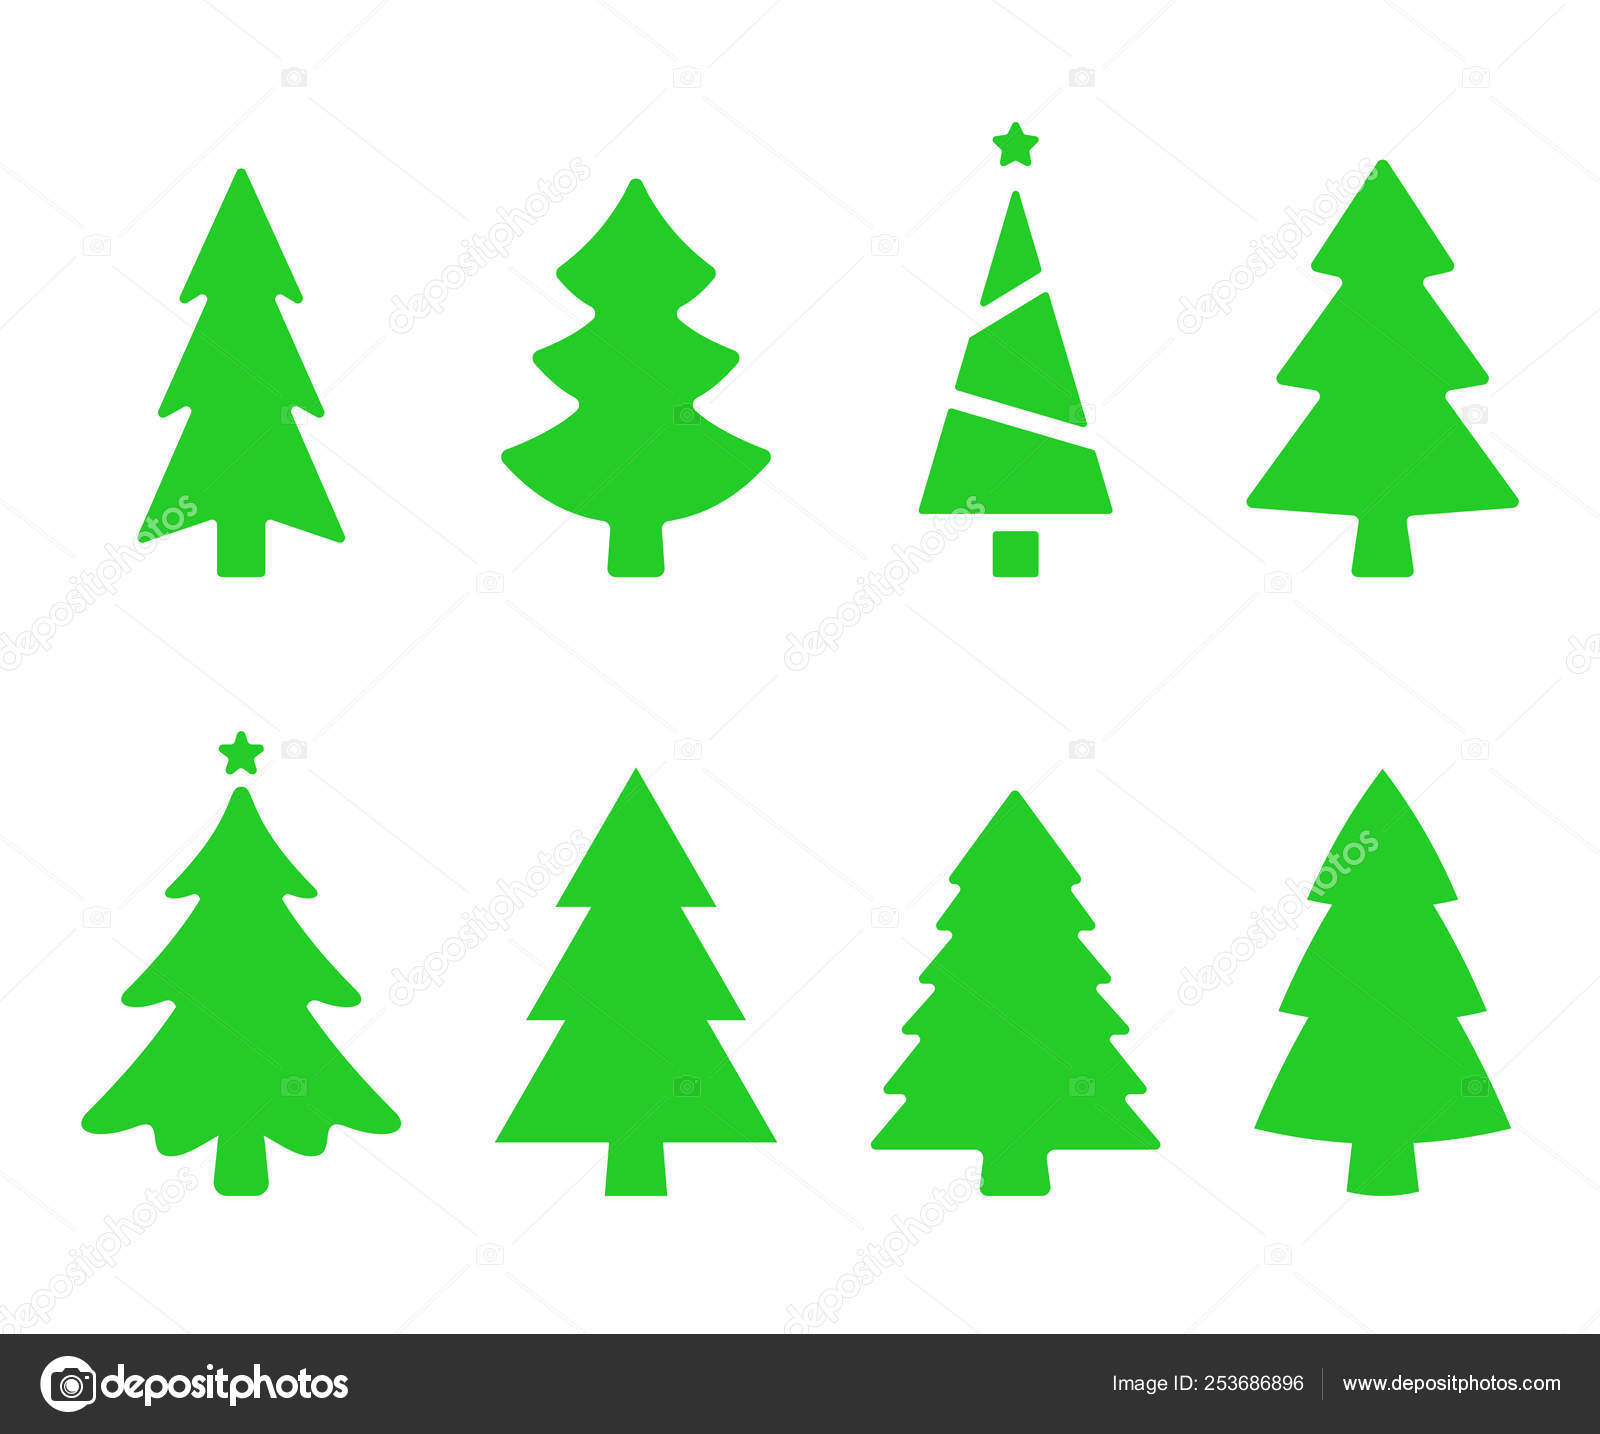 Christmas Trees Silhouette.Vector Collection Of Christmas Trees Christmas Tree